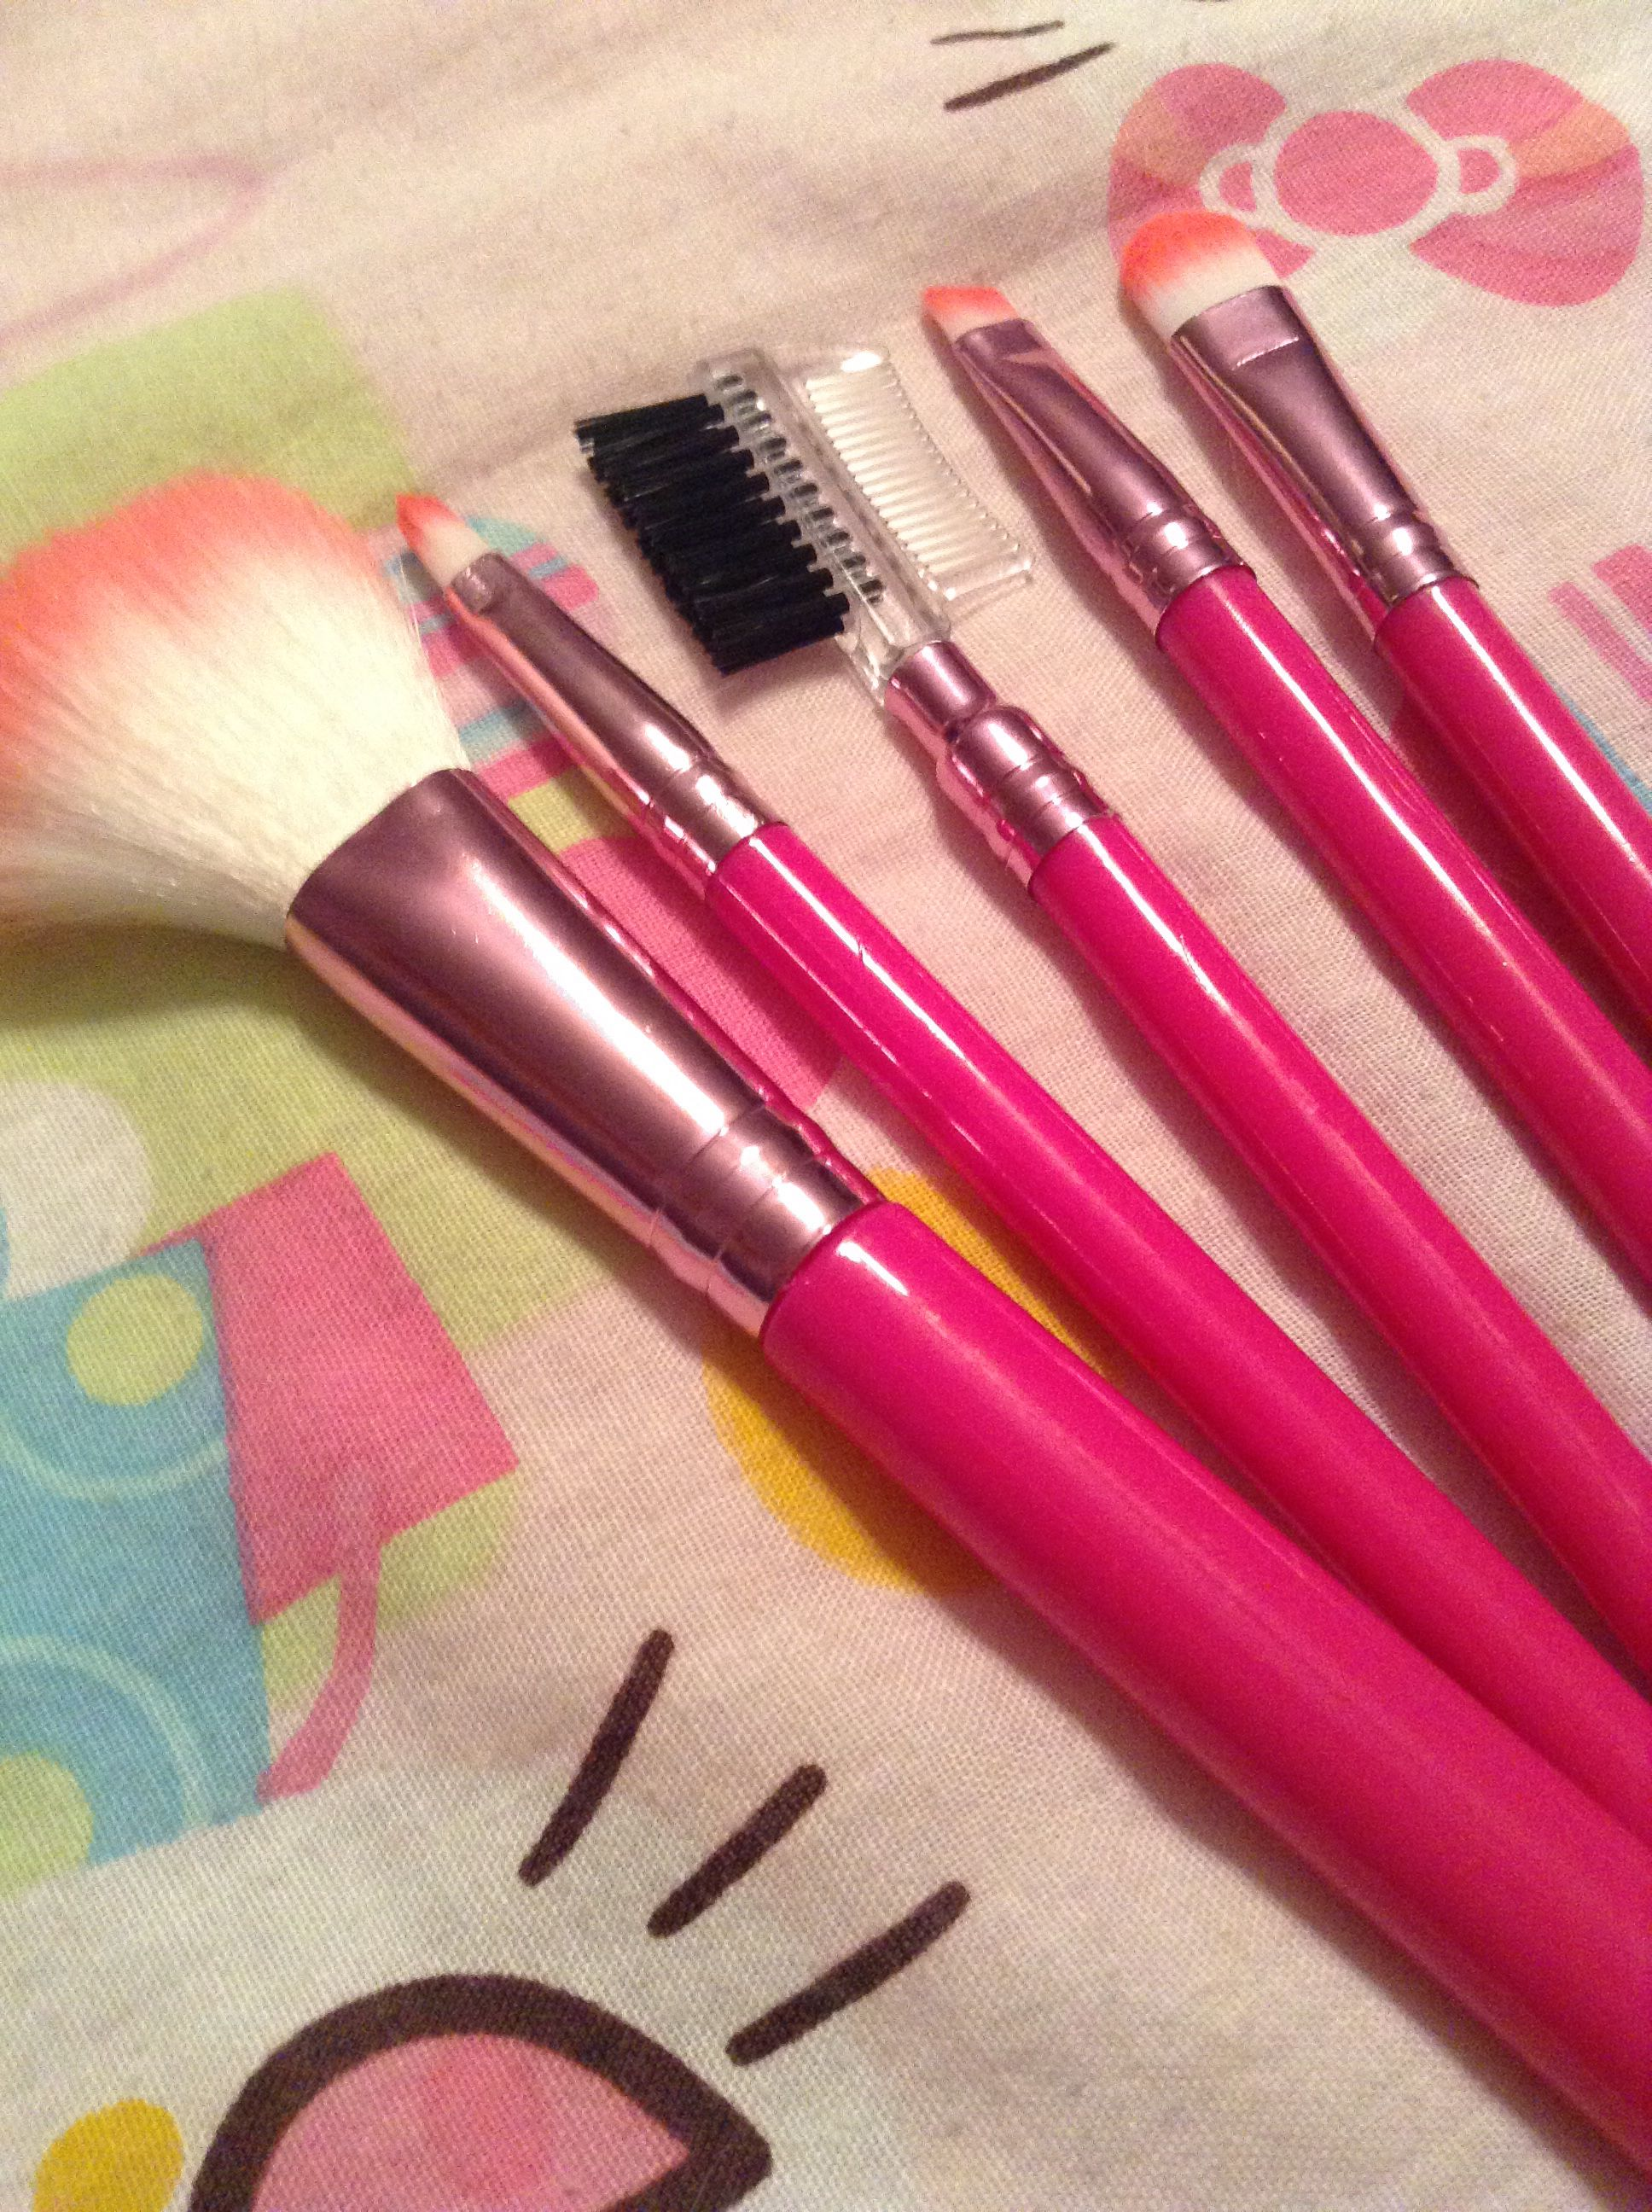 My new brushes from Five Below for three USD!! I liked the